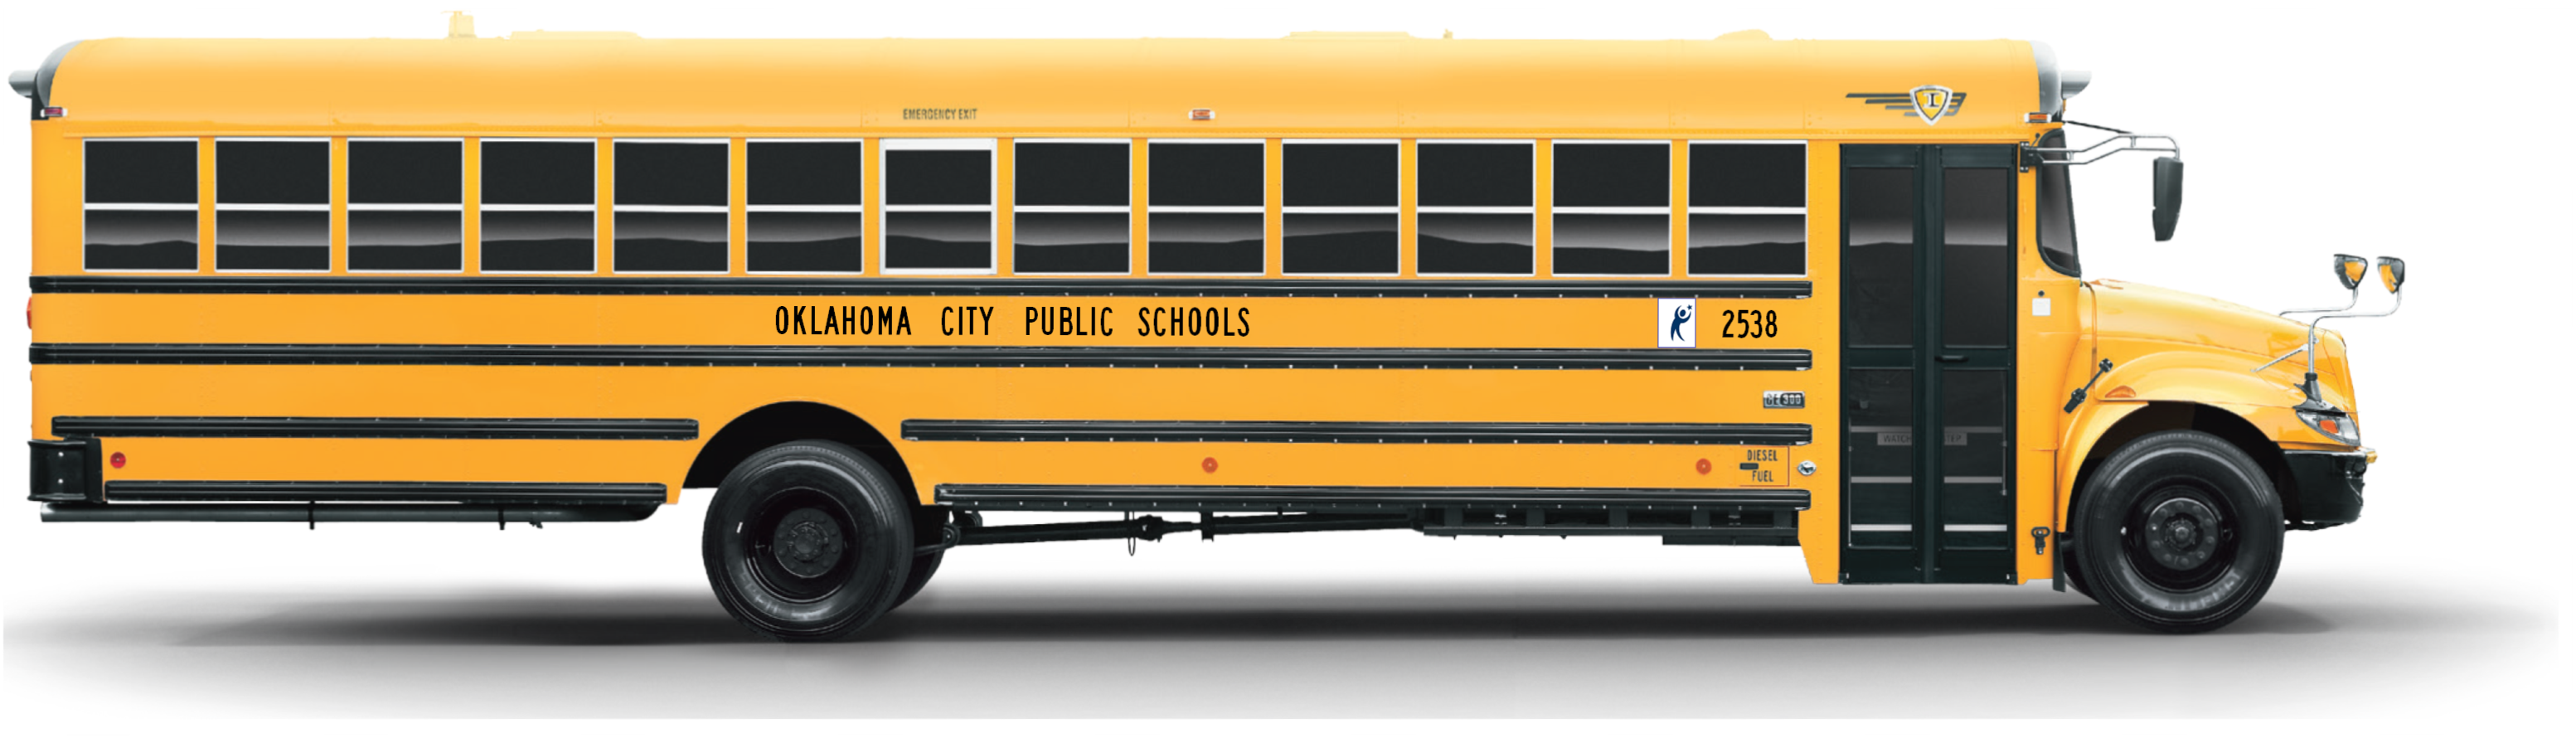 city bus side view png transparent city bus side viewpng